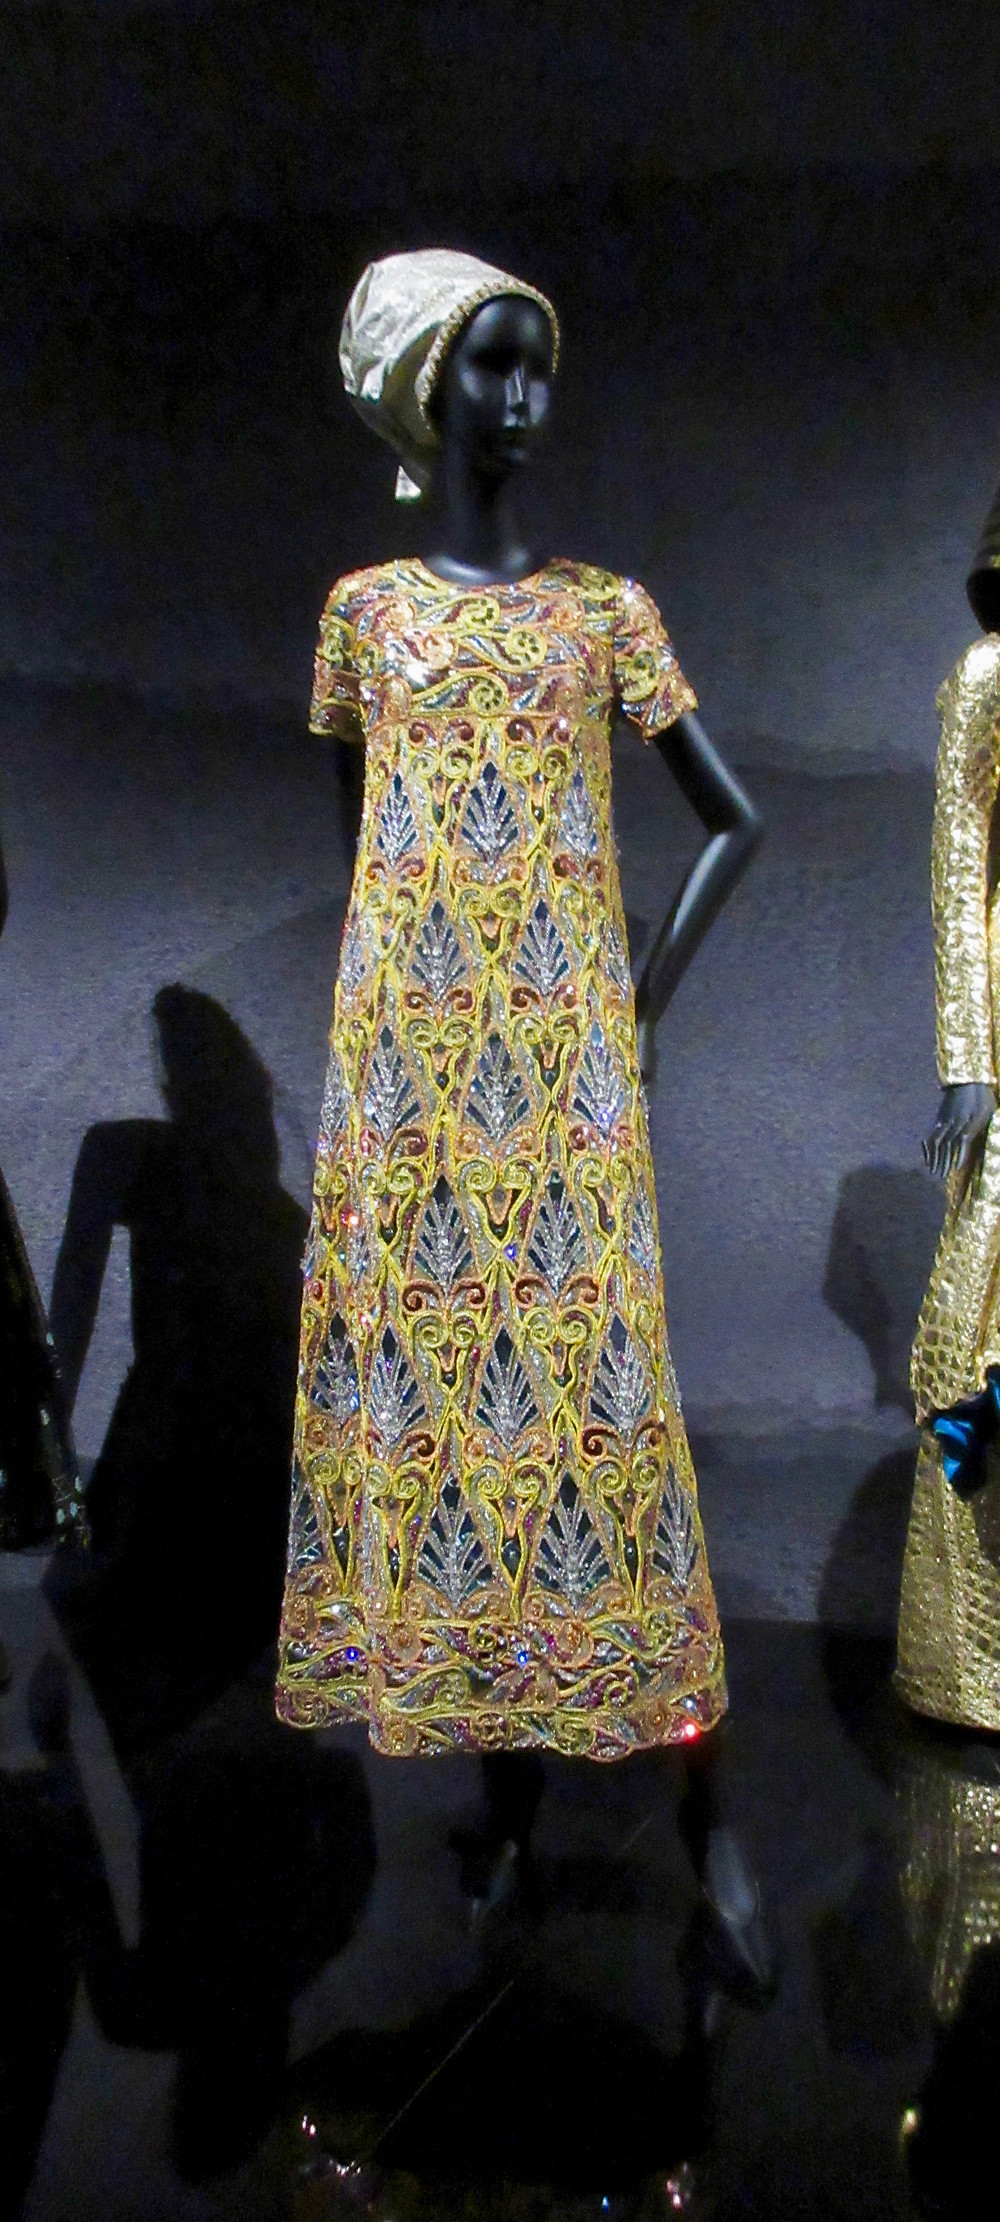 Egyptian Influence - Marc Bohan Haute Couture Spring Summer 1968. Silk, swarovski crystals, melanex and metal thread. Shows the palmette icon used in Egyptian architecture